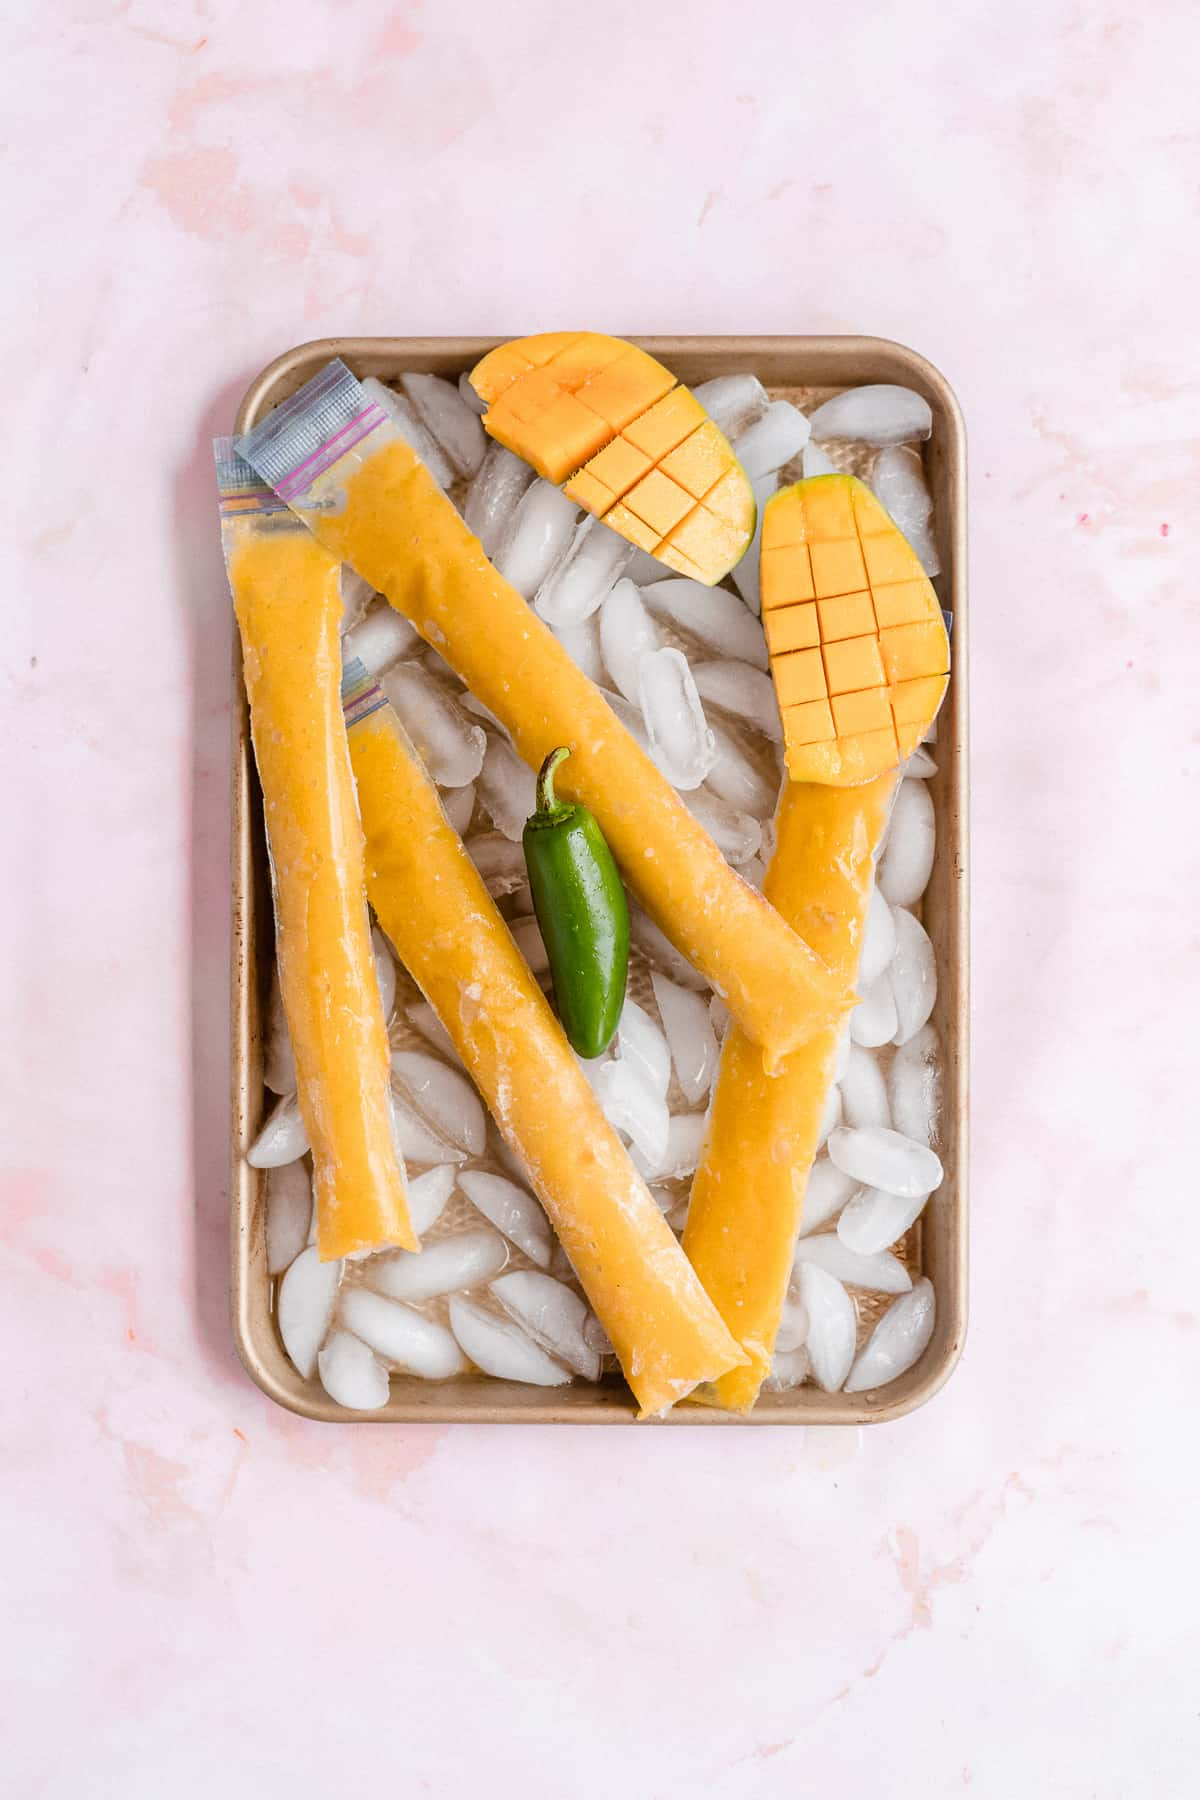 Frozen orange ice pops on a sheet with ice.